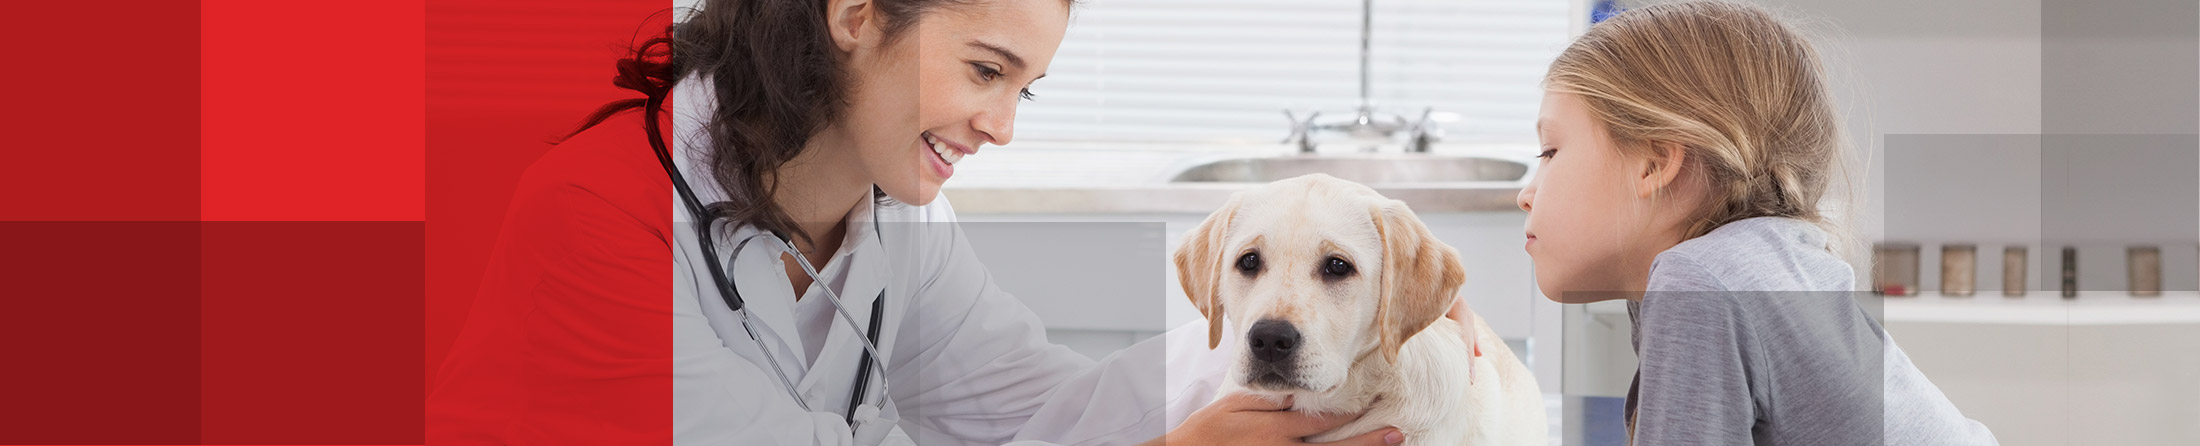 Veterinary, animal nutrition, medical supplies and equipment to veterinary practices